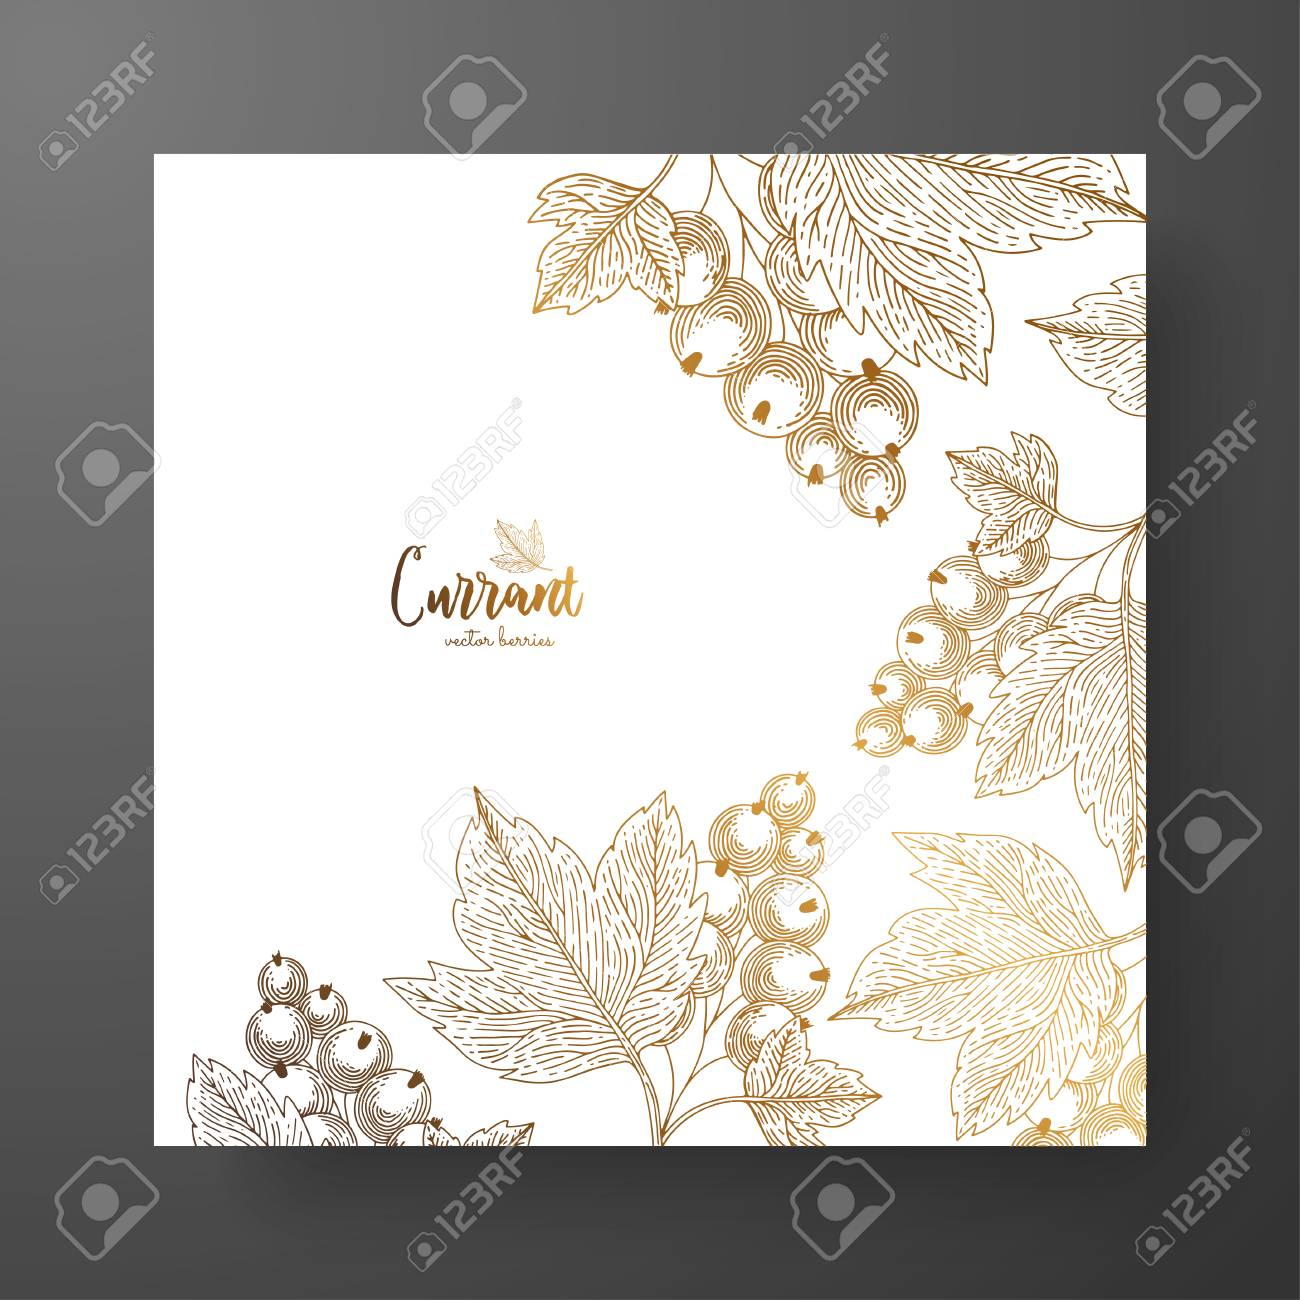 Gold card template for invitations greeting cards postcards gold card template for invitations greeting cards postcards package design or as m4hsunfo